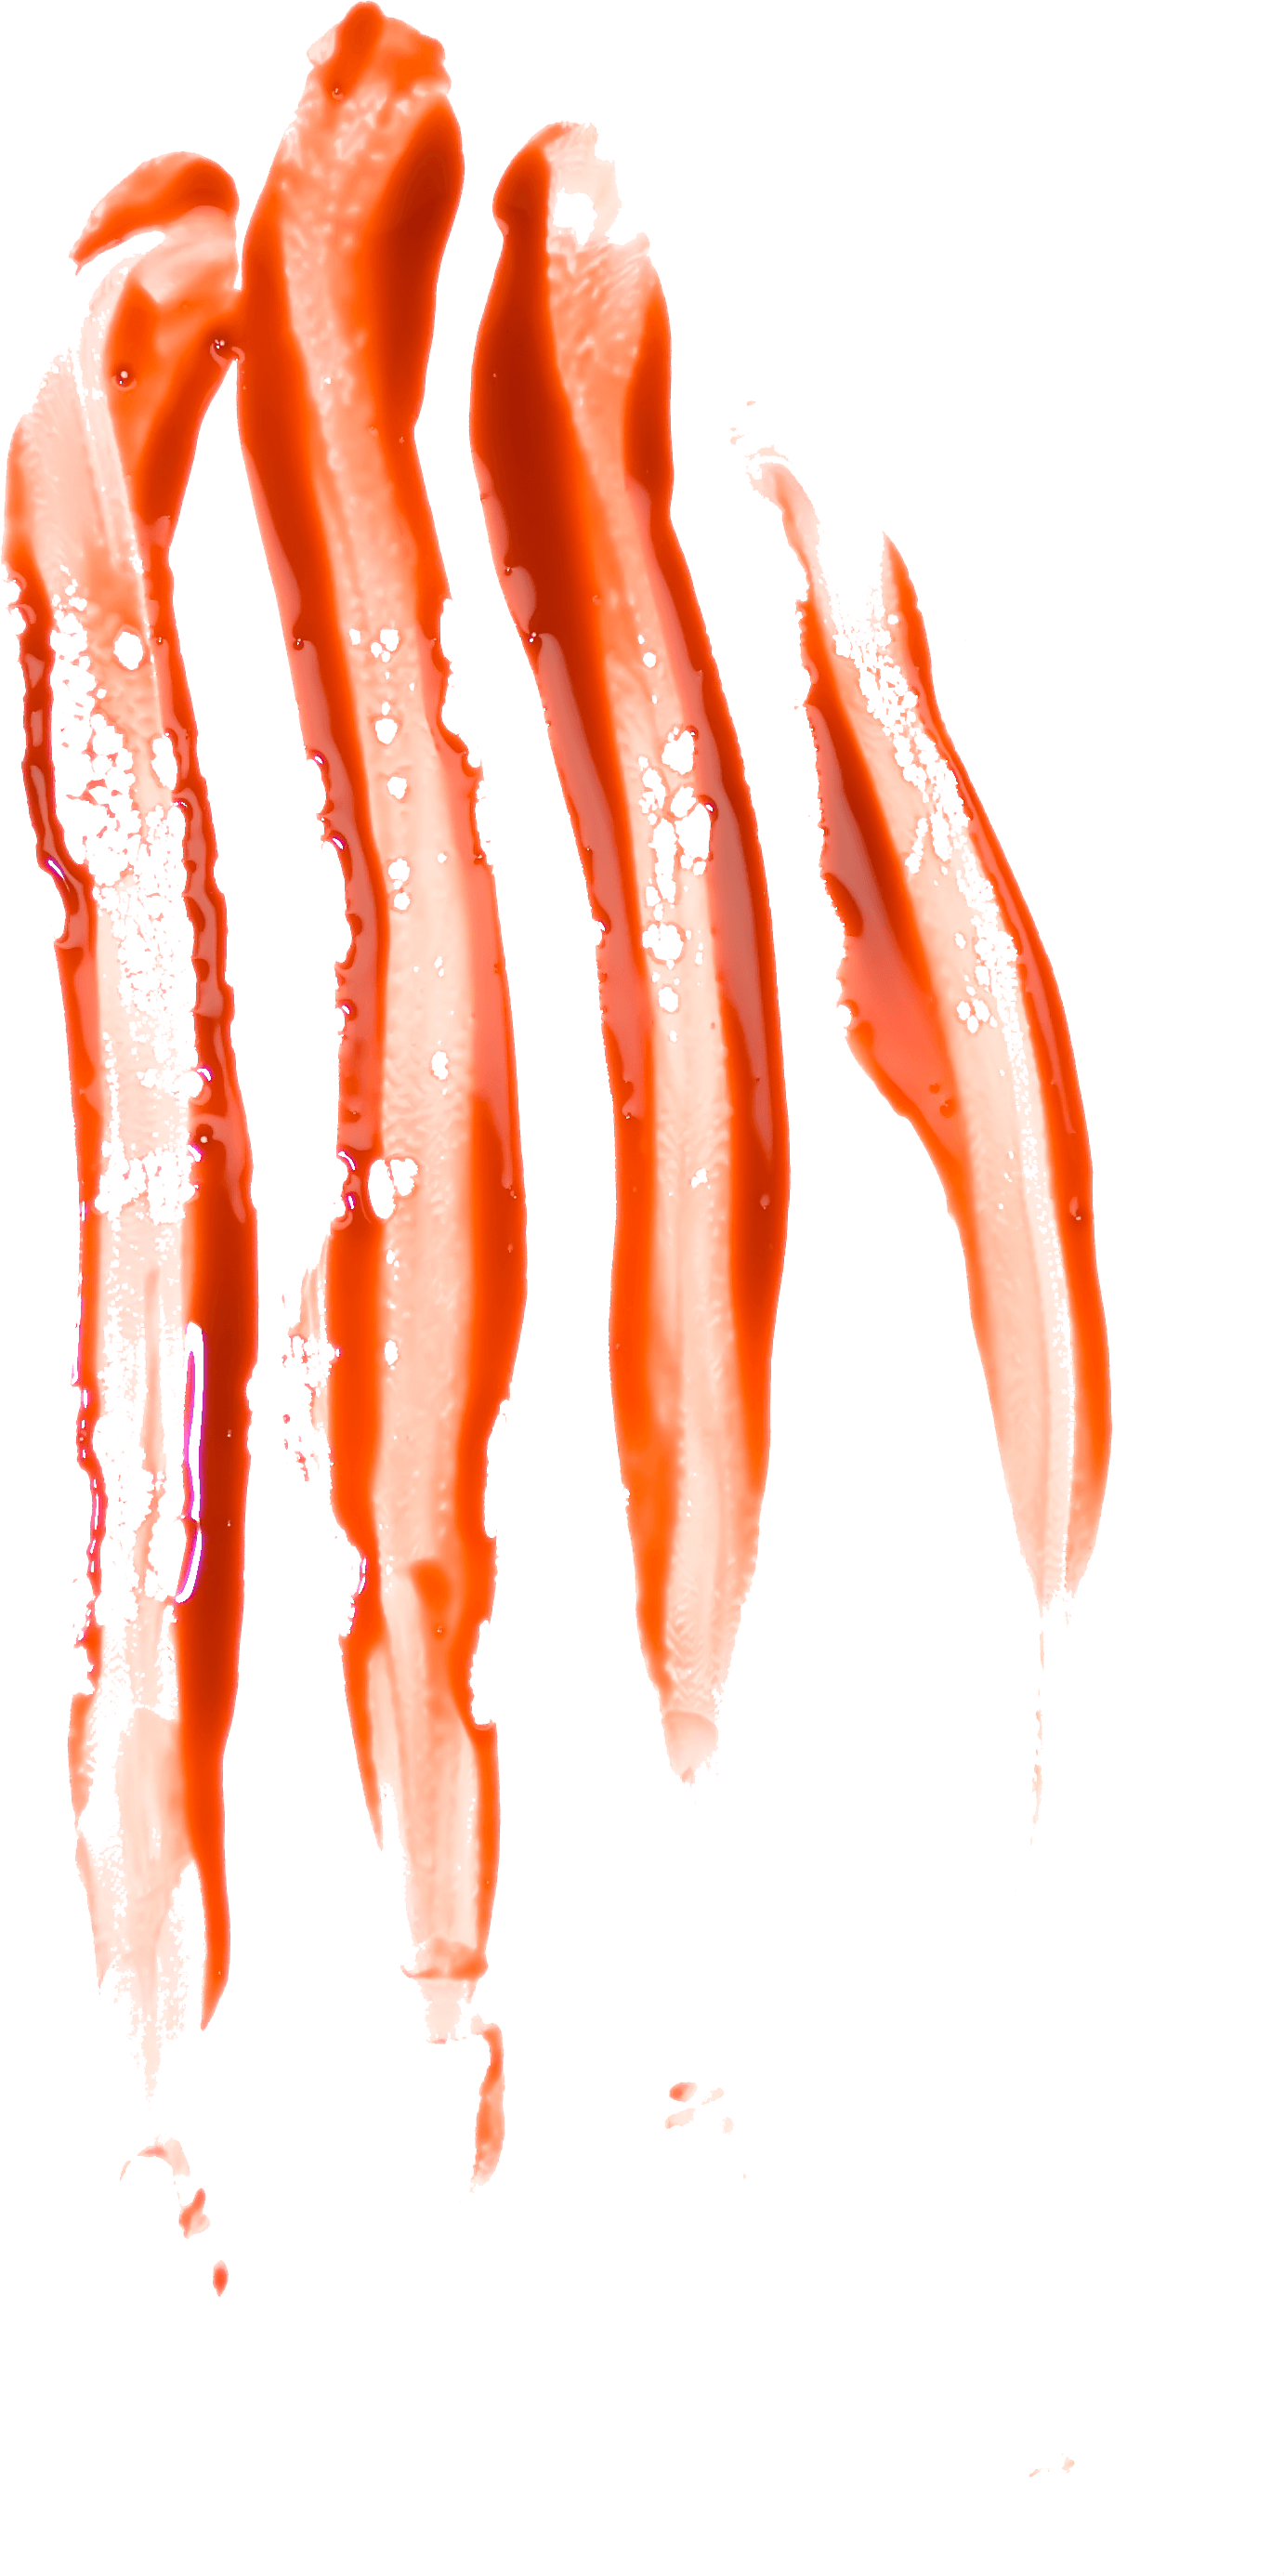 Dripping Blood PNG - 170437